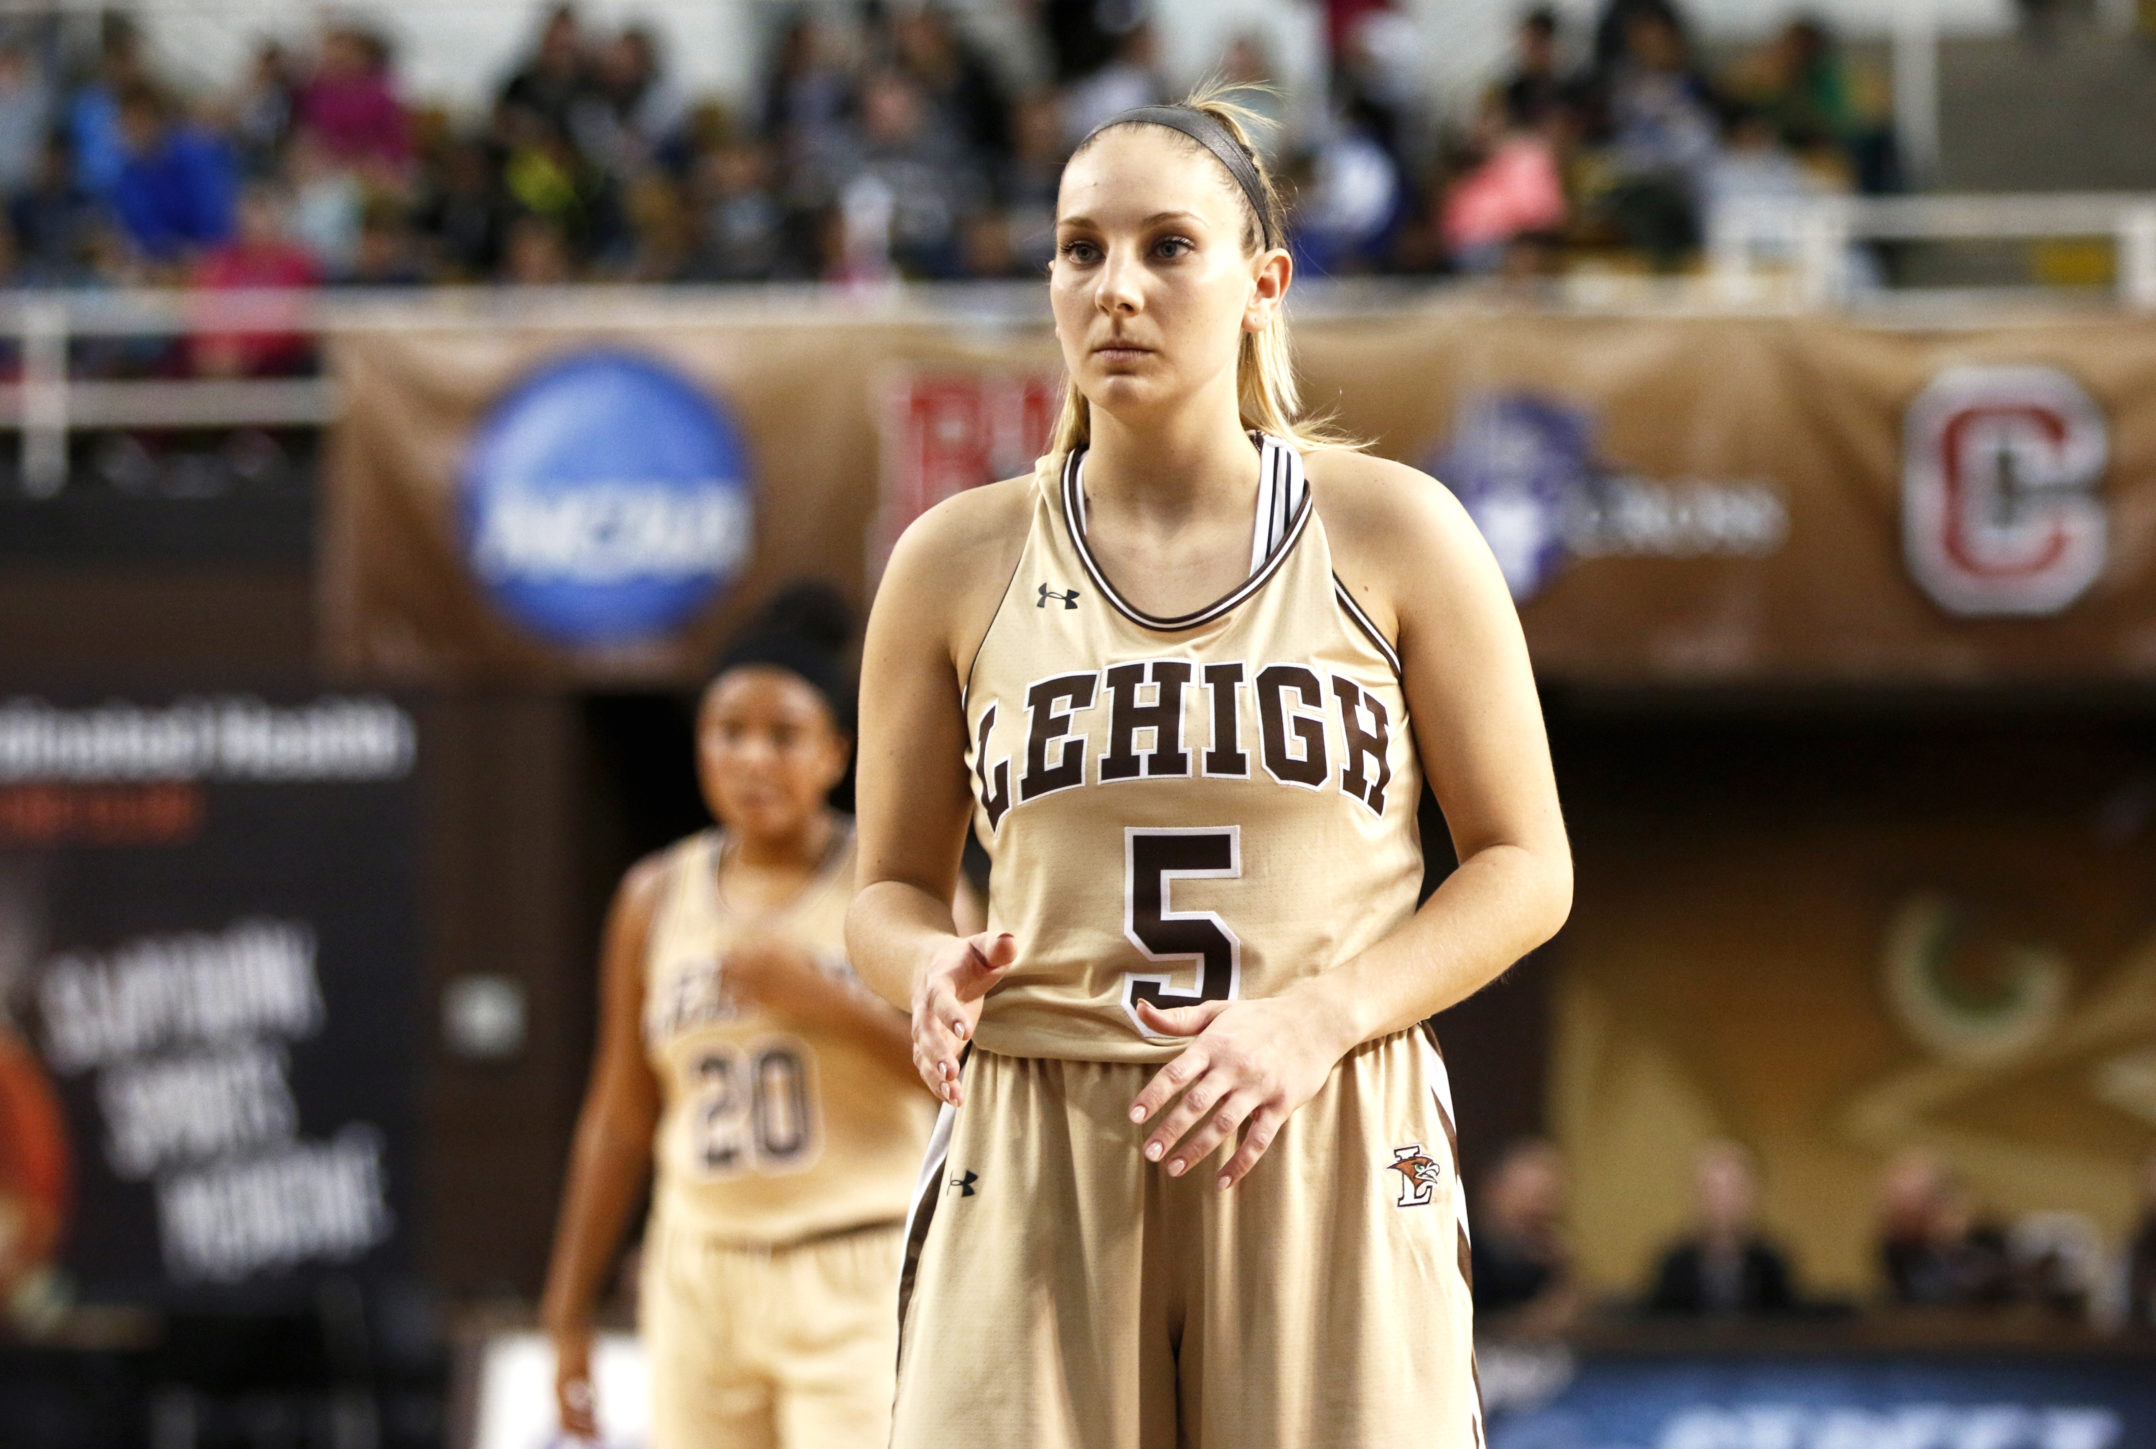 Senior guard Bernadette Devaney prepares for a free throw shot at Stabler Arena Wednesday morning. Lehigh hosted Education Day and invited surrounding school districts to the women's basketball game. (Michelle Wolff/B&W Staff)